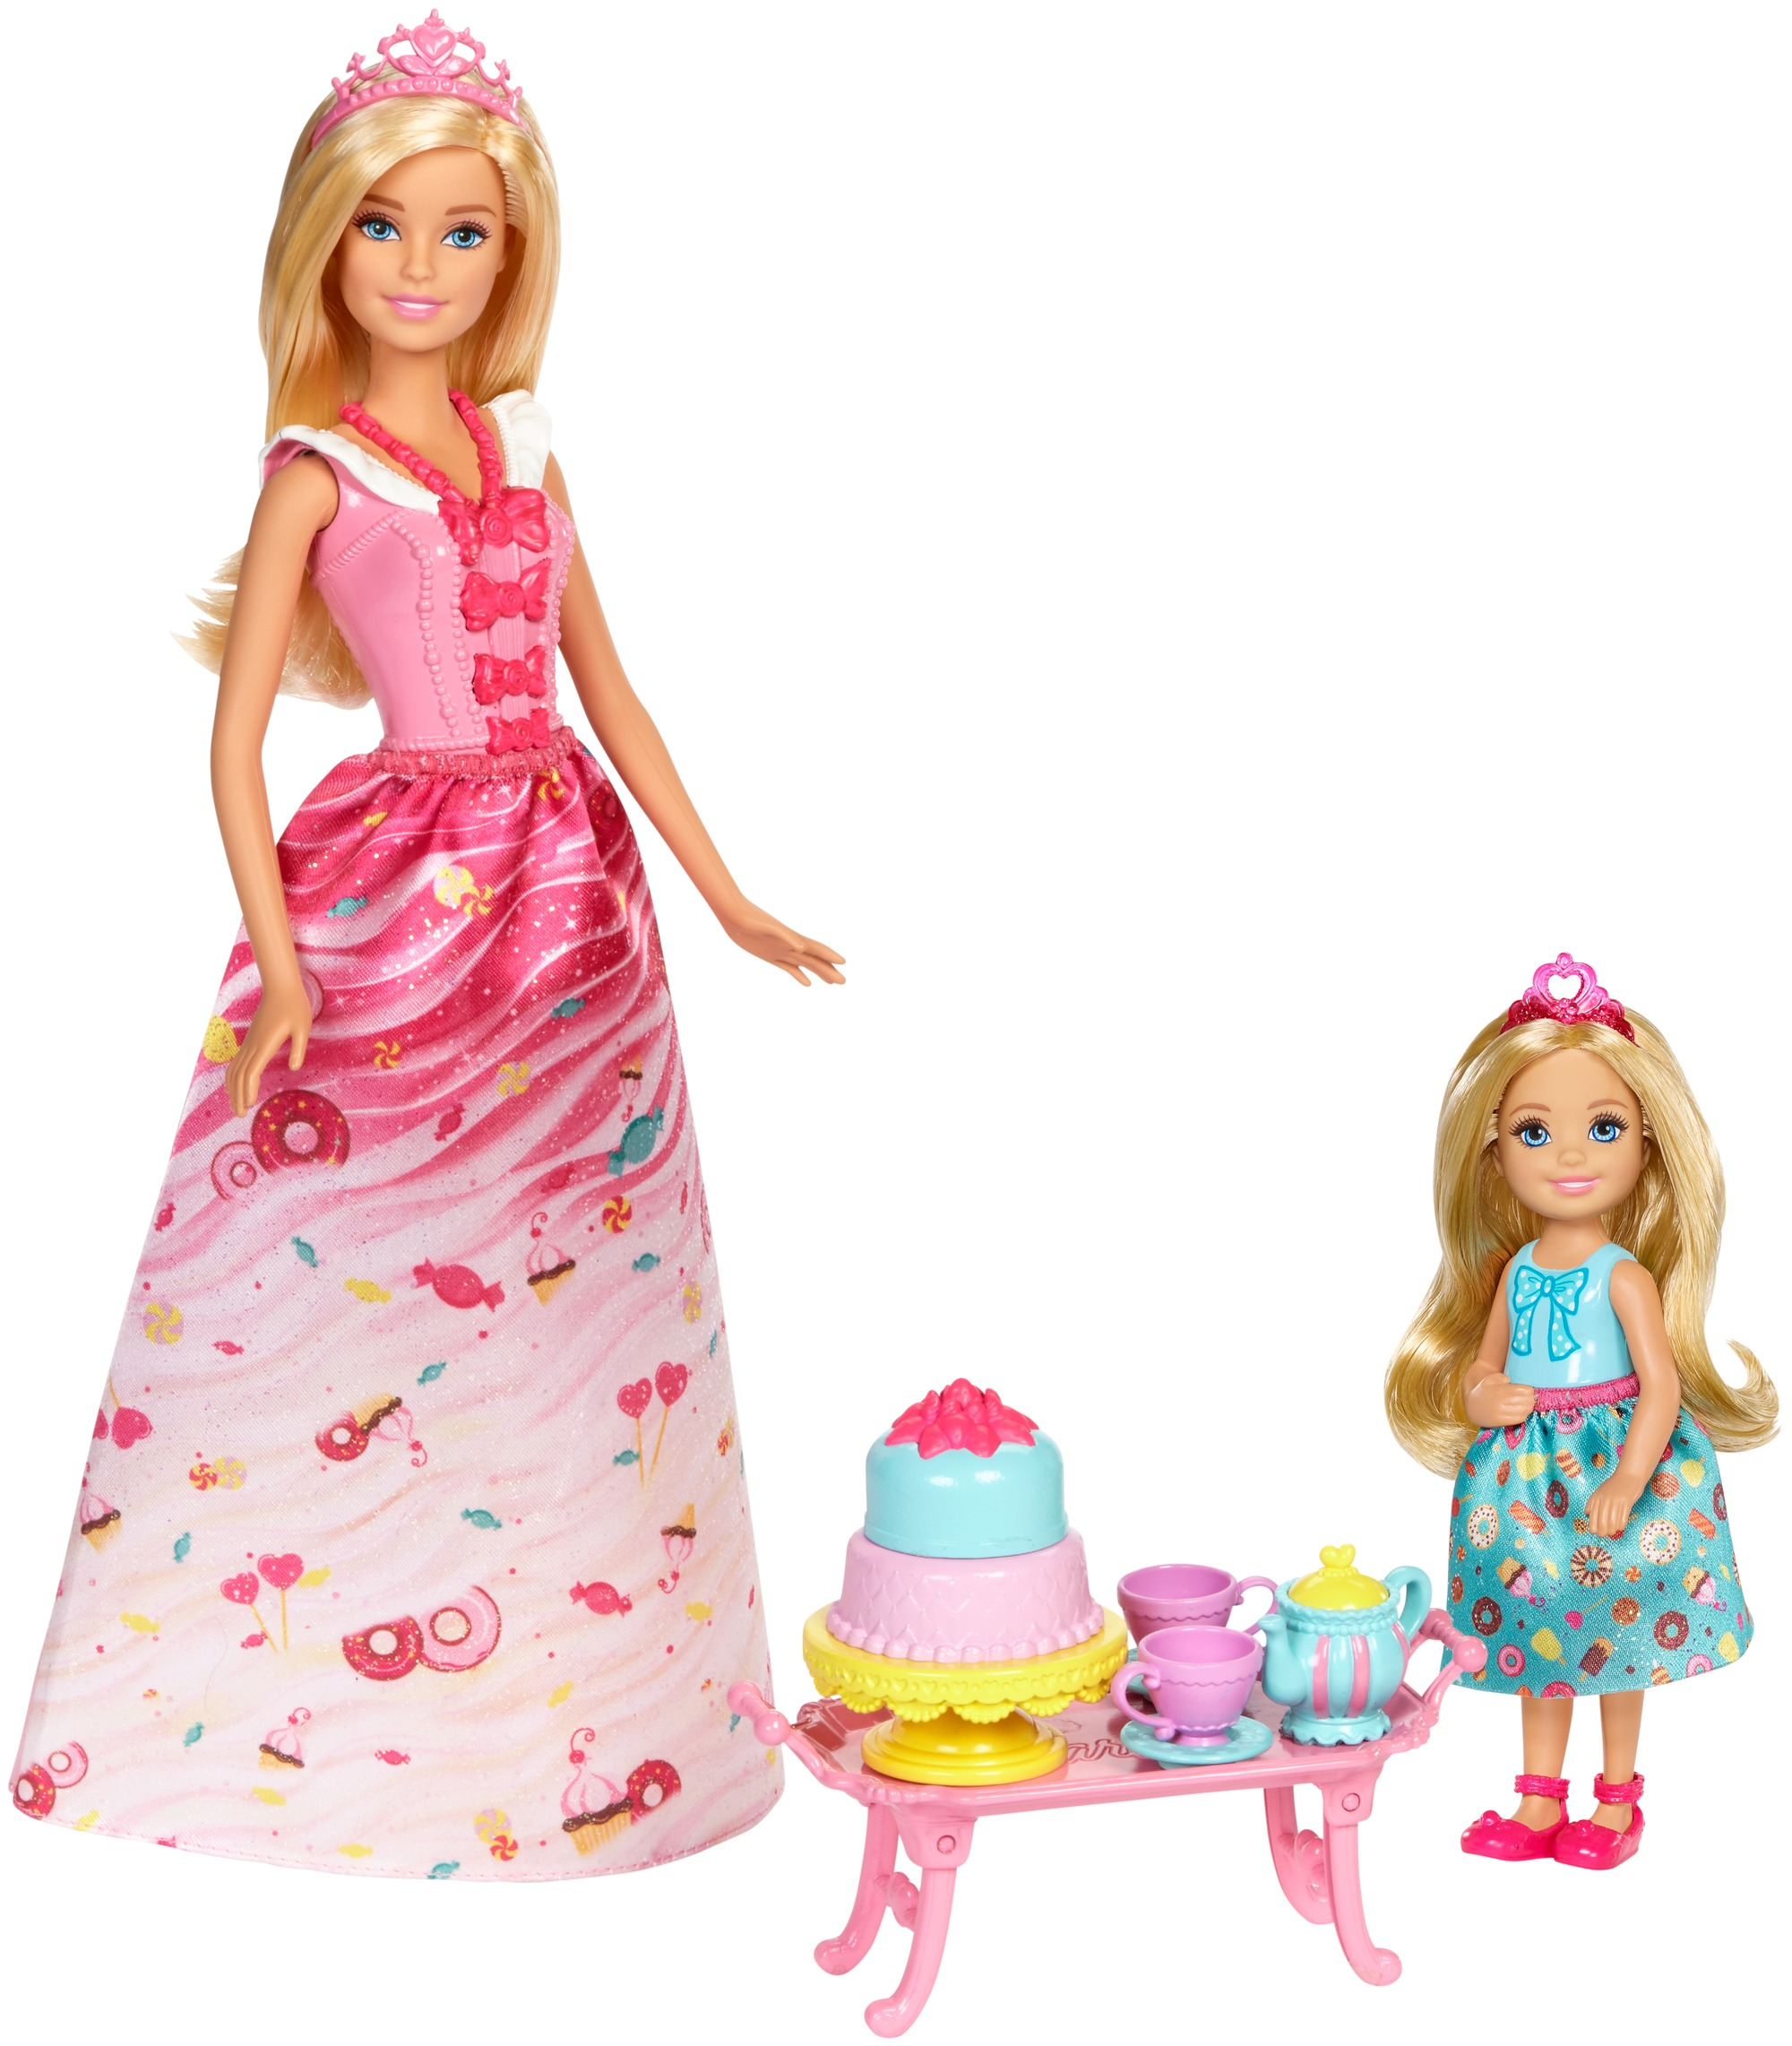 Barbie Dreamtopia Sweetville Princess Tea Party by Mattel